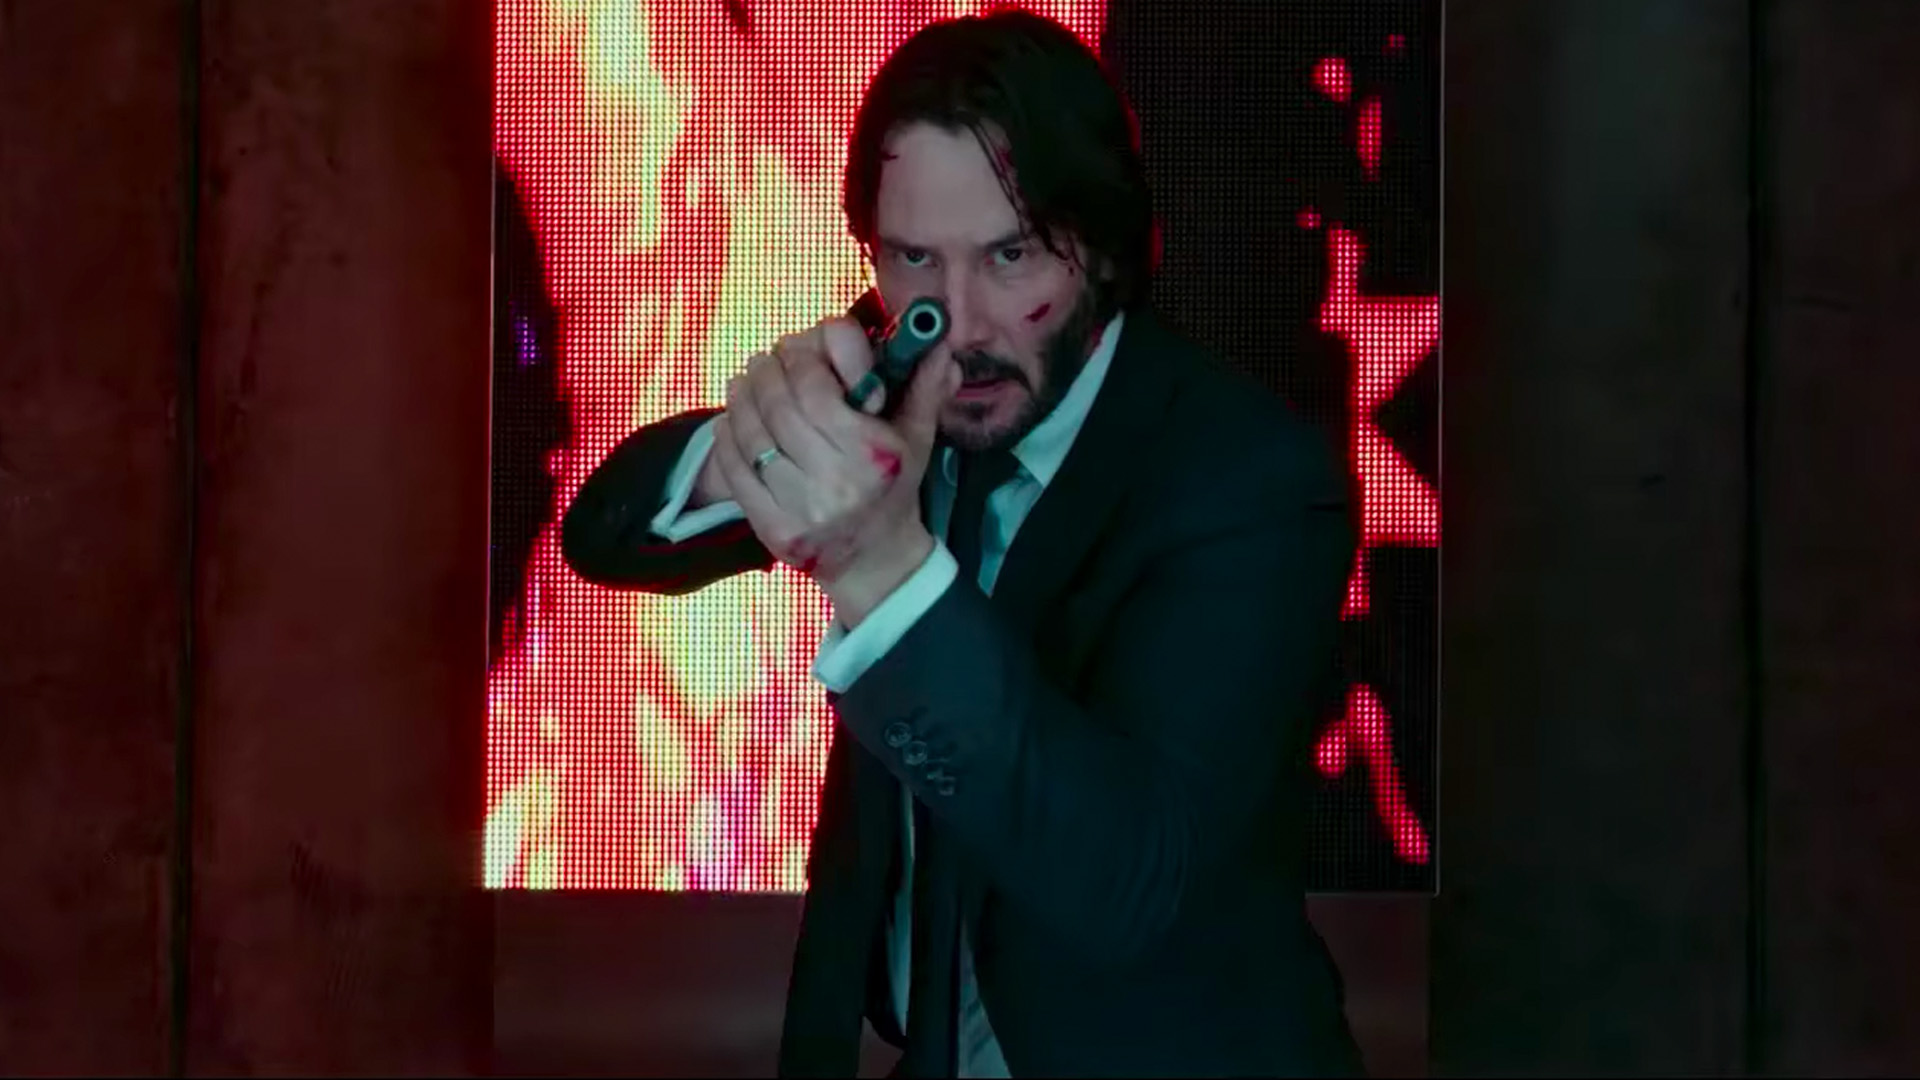 John wick club scene soundtrack